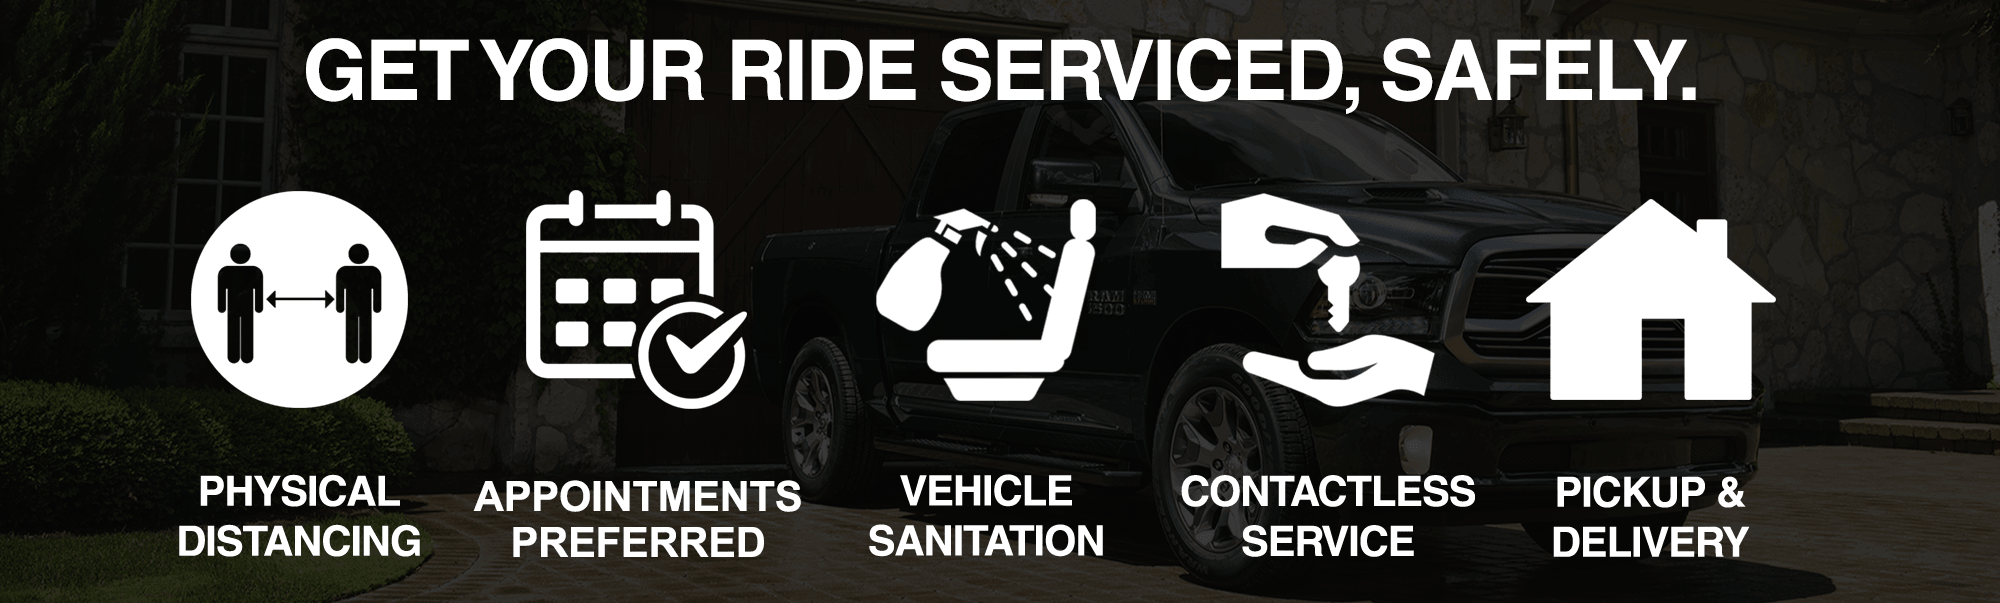 Get Your Ride Serviced Safely at Bustard Chrysler Waterloo